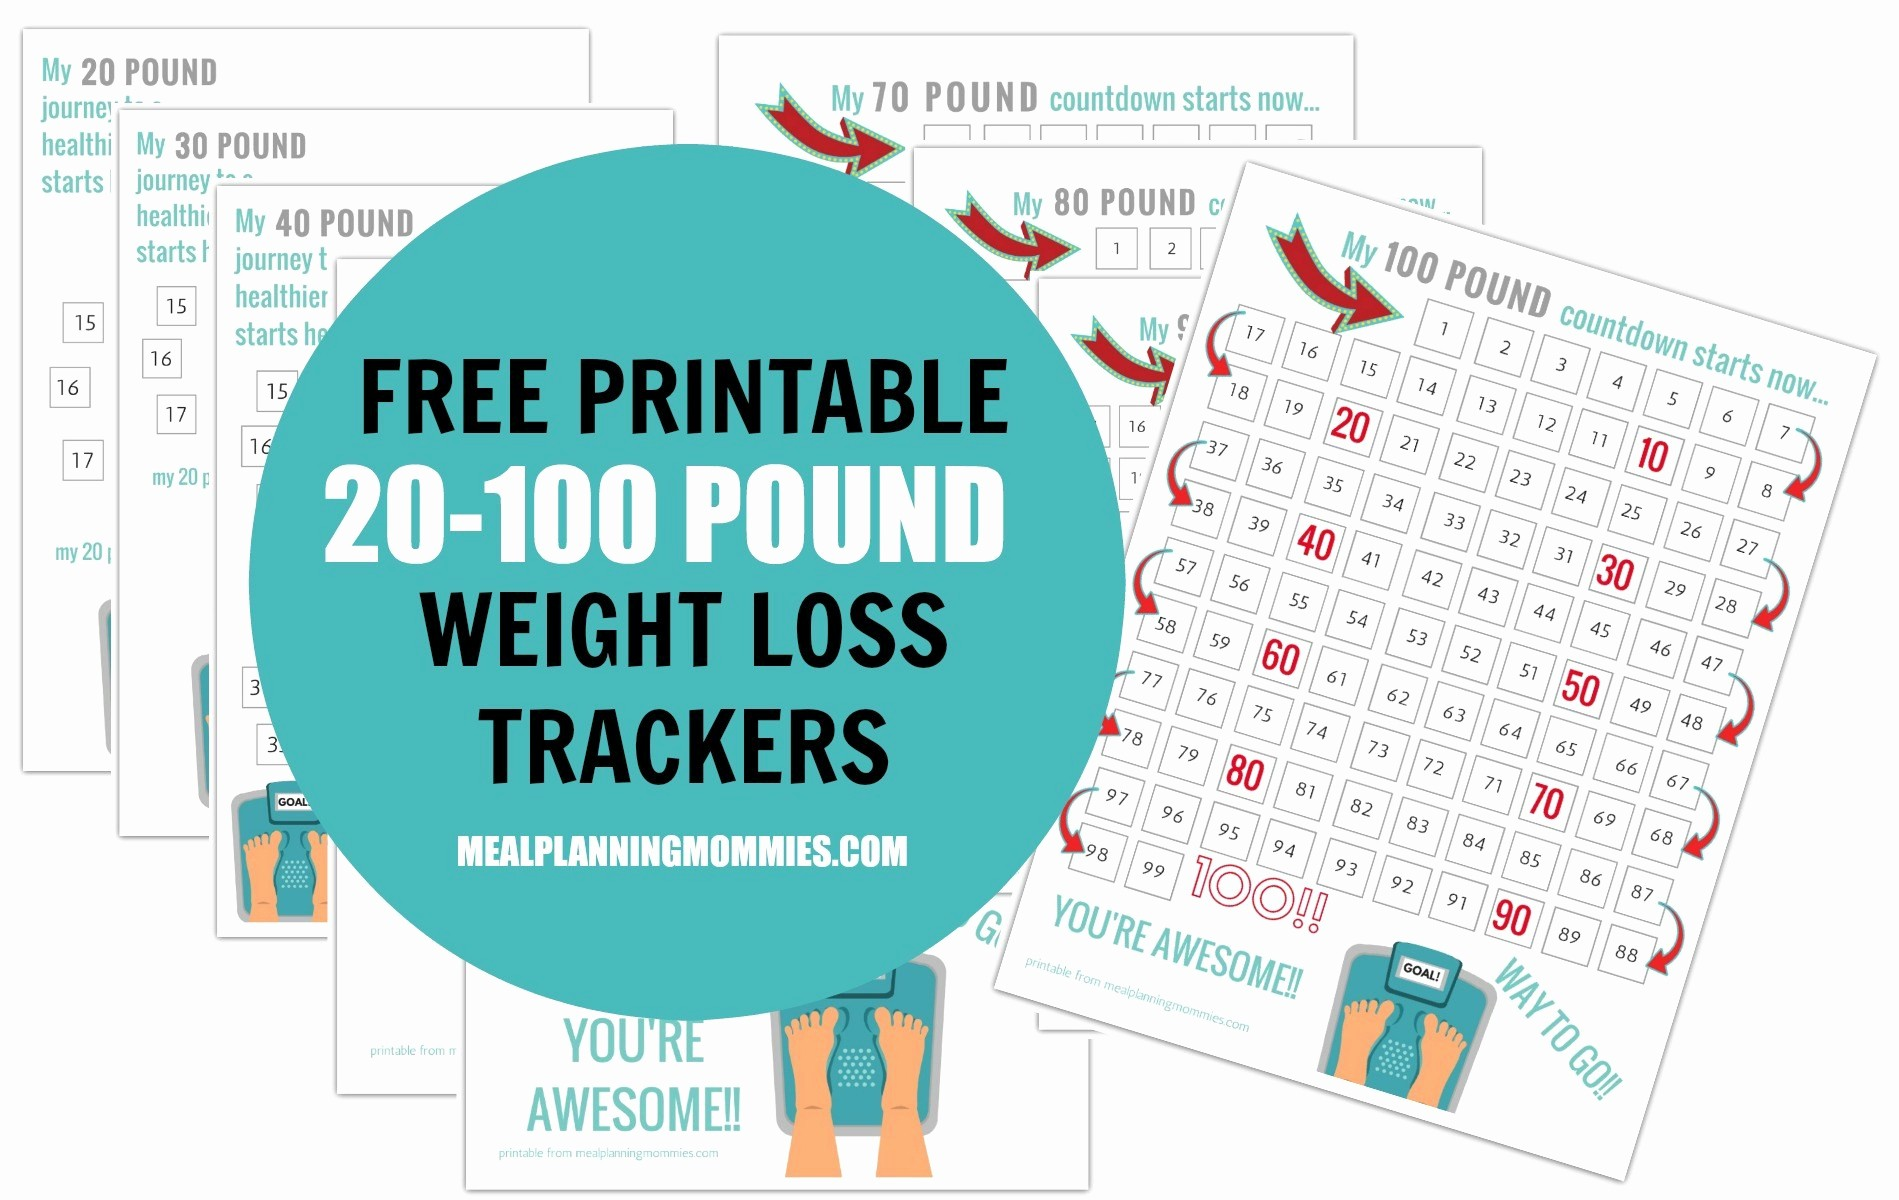 Free Printable Weight Loss Tracker Best Of Free Printable 20 100 Pound Weight Loss Trackers Meal